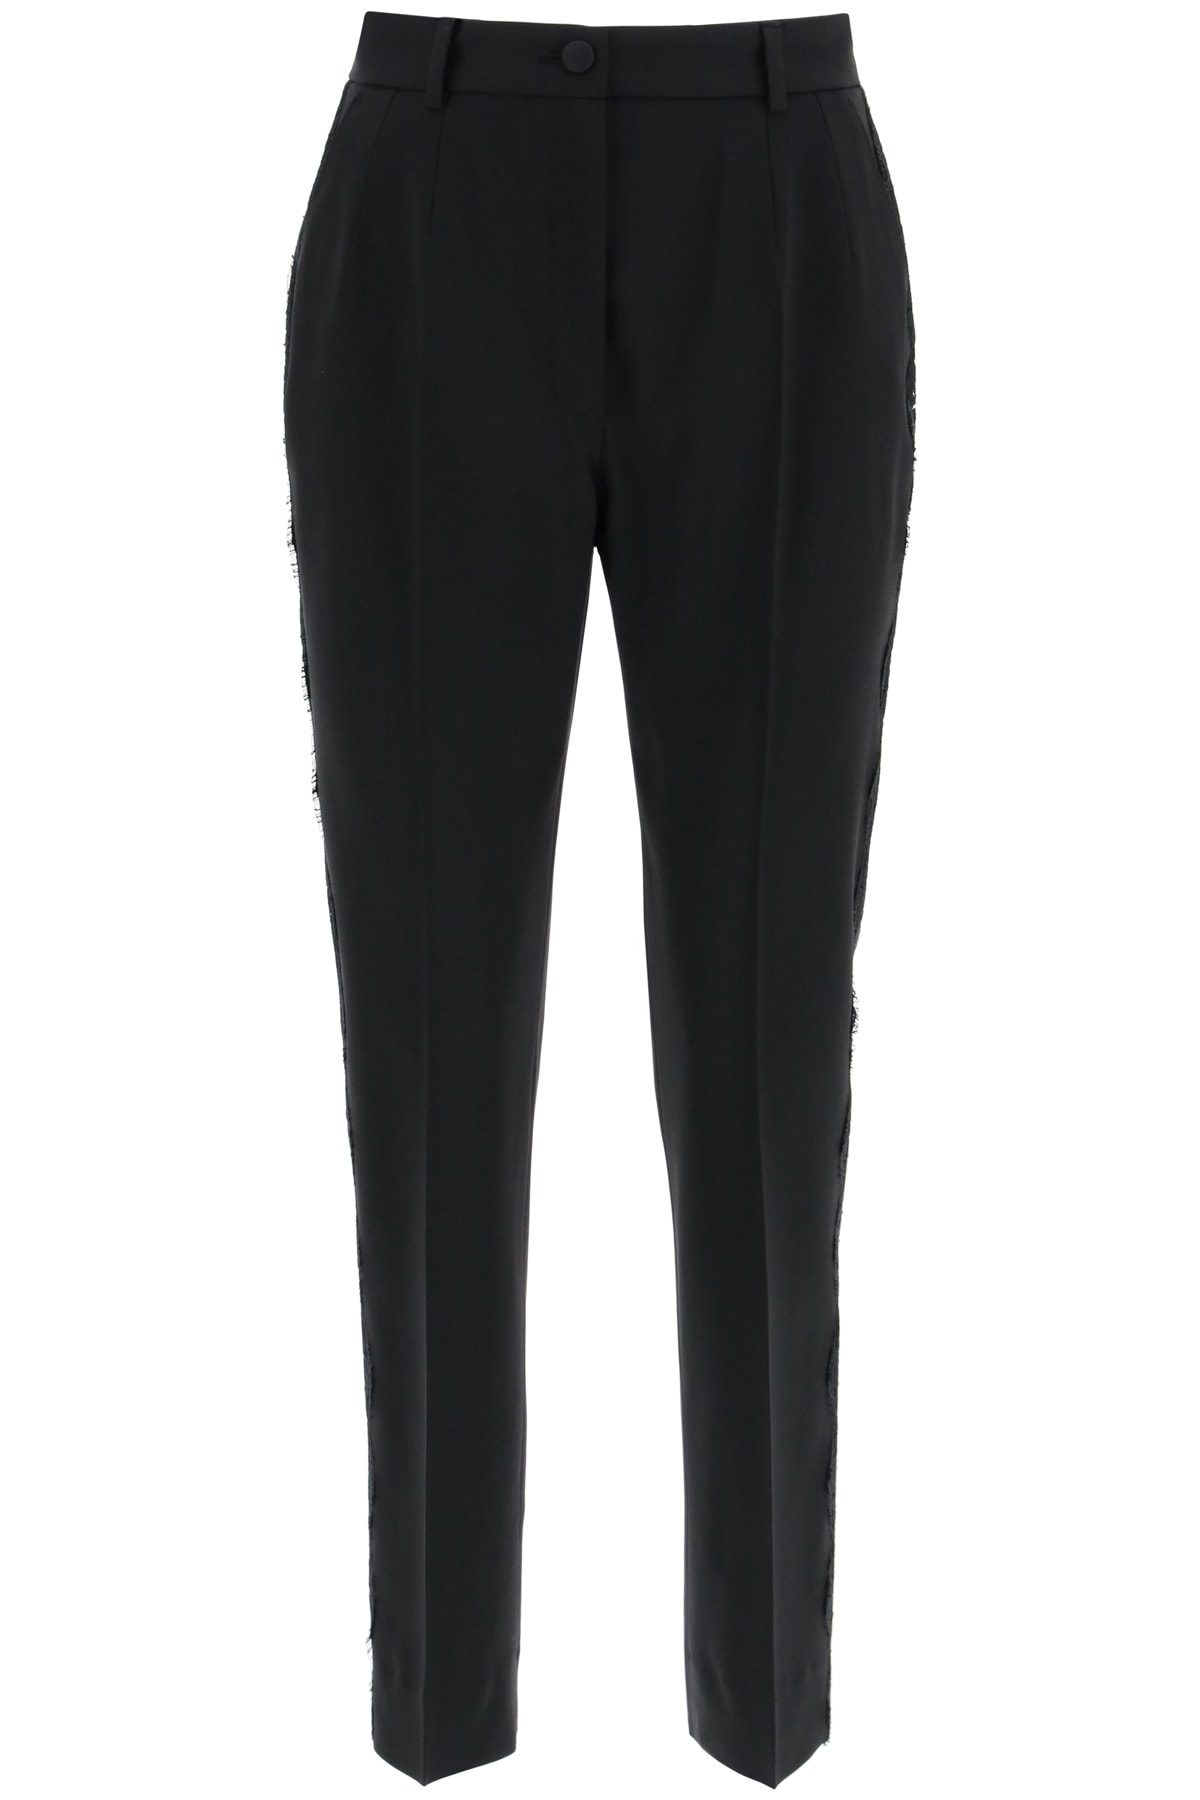 Dolce & Gabbana Trousers With Lace Band